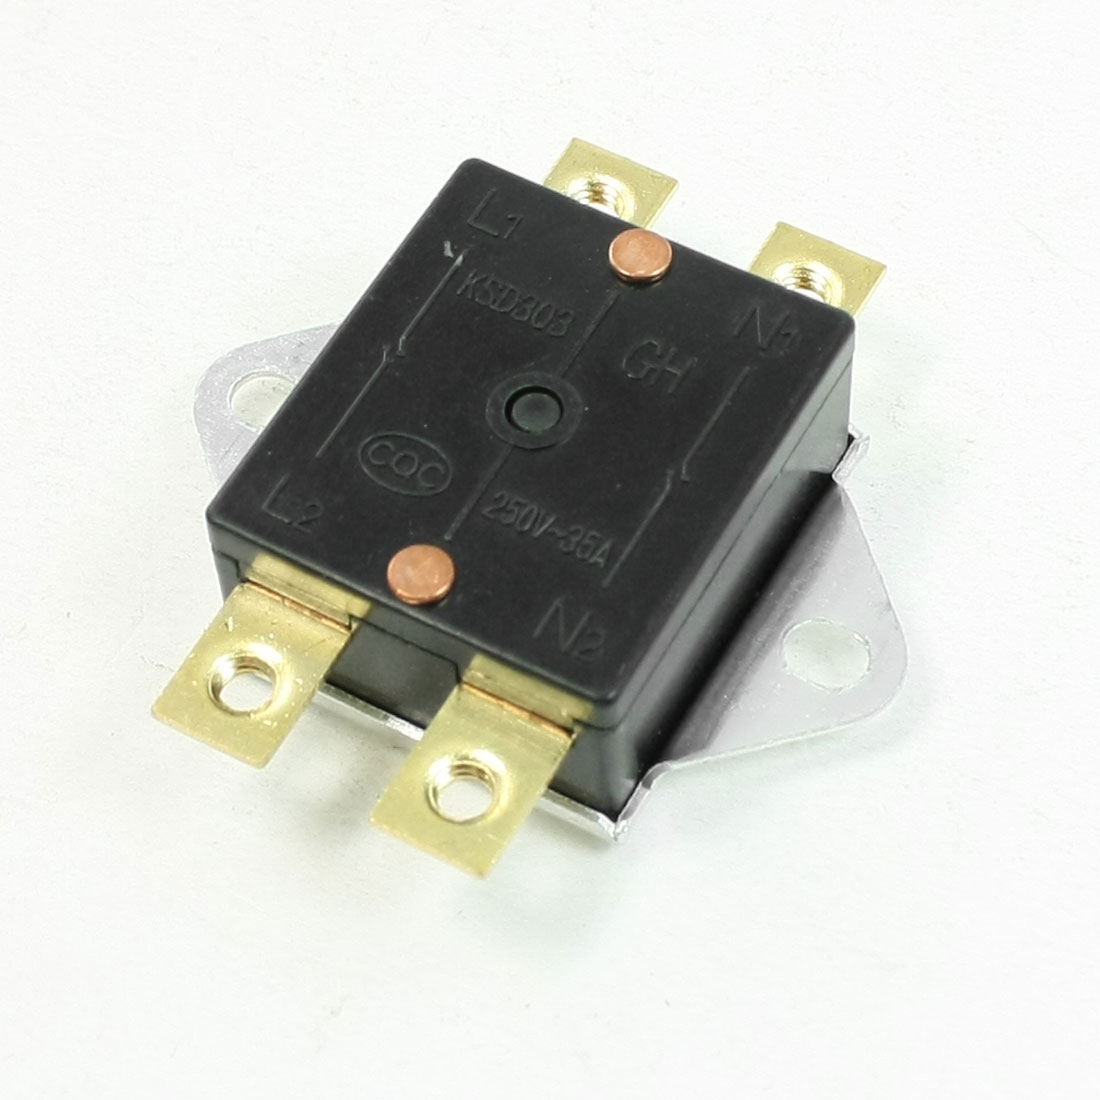 KSD303 98 Celsius N.C.Temperature Control Switch Thermostat Right Angle